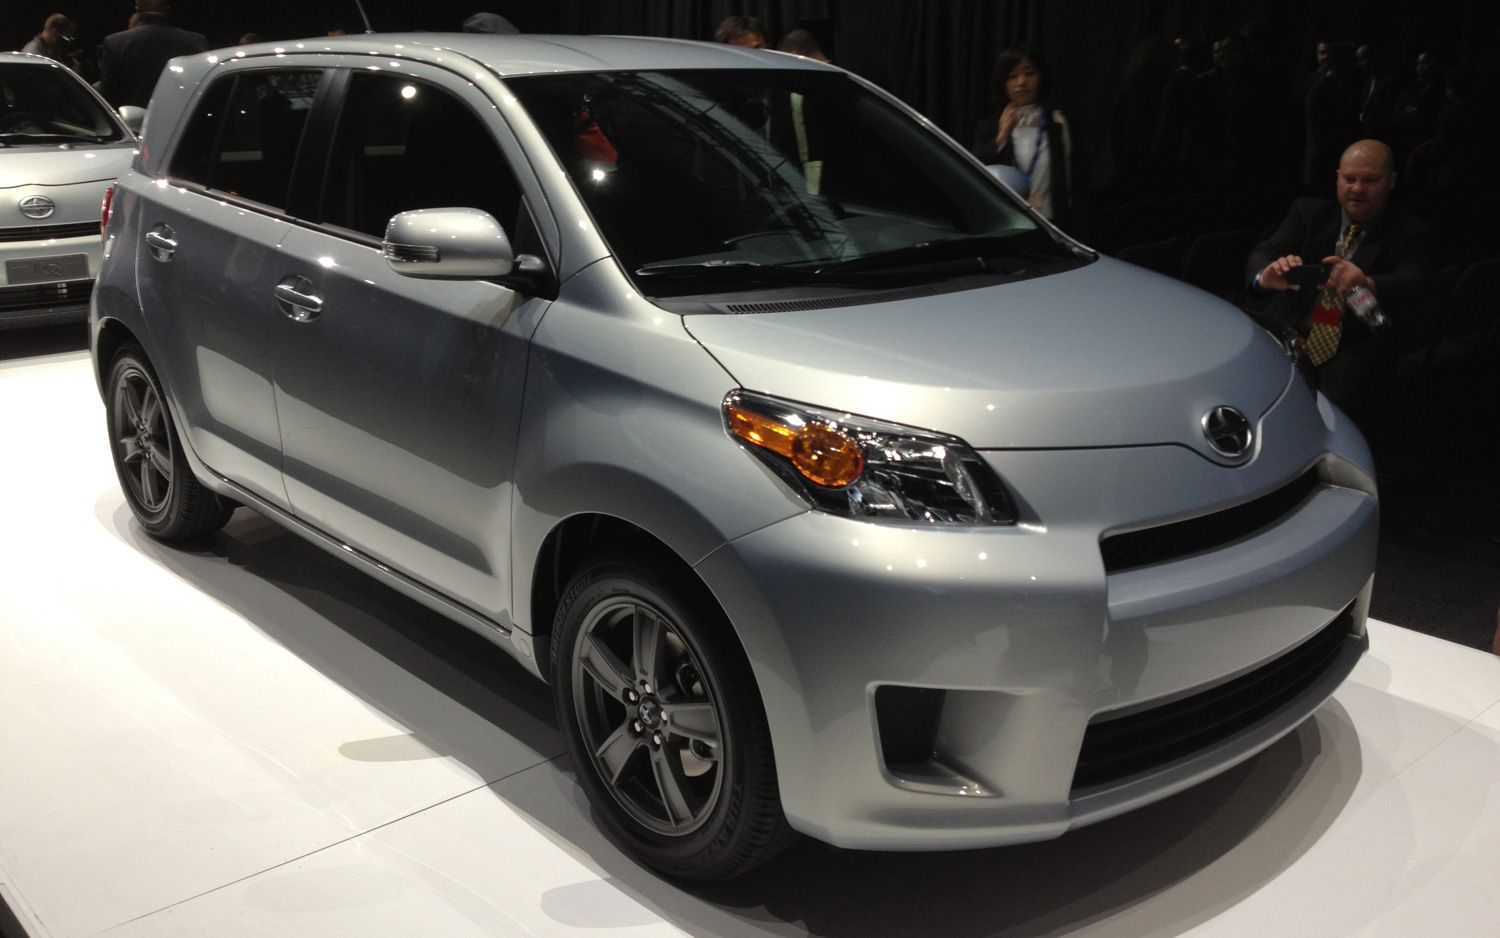 2014 Scion Xd #4